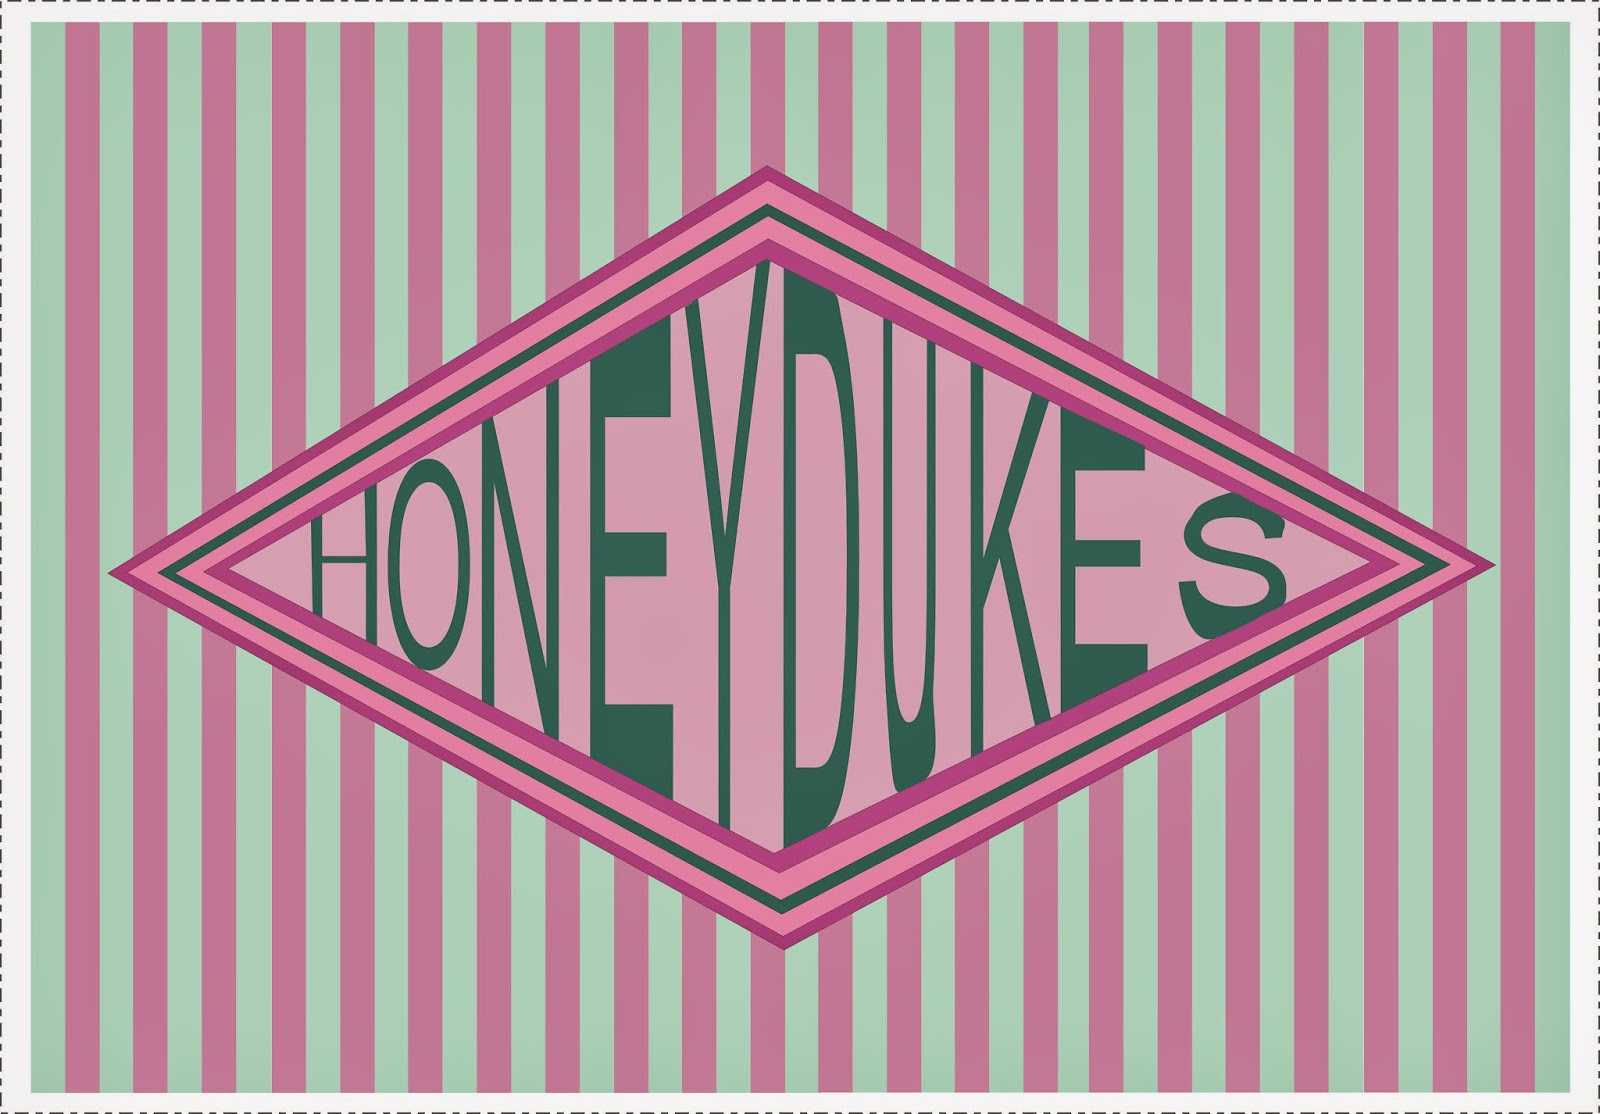 picture relating to Honeydukes Sign Printable referred to as Honeydukes Trademarks